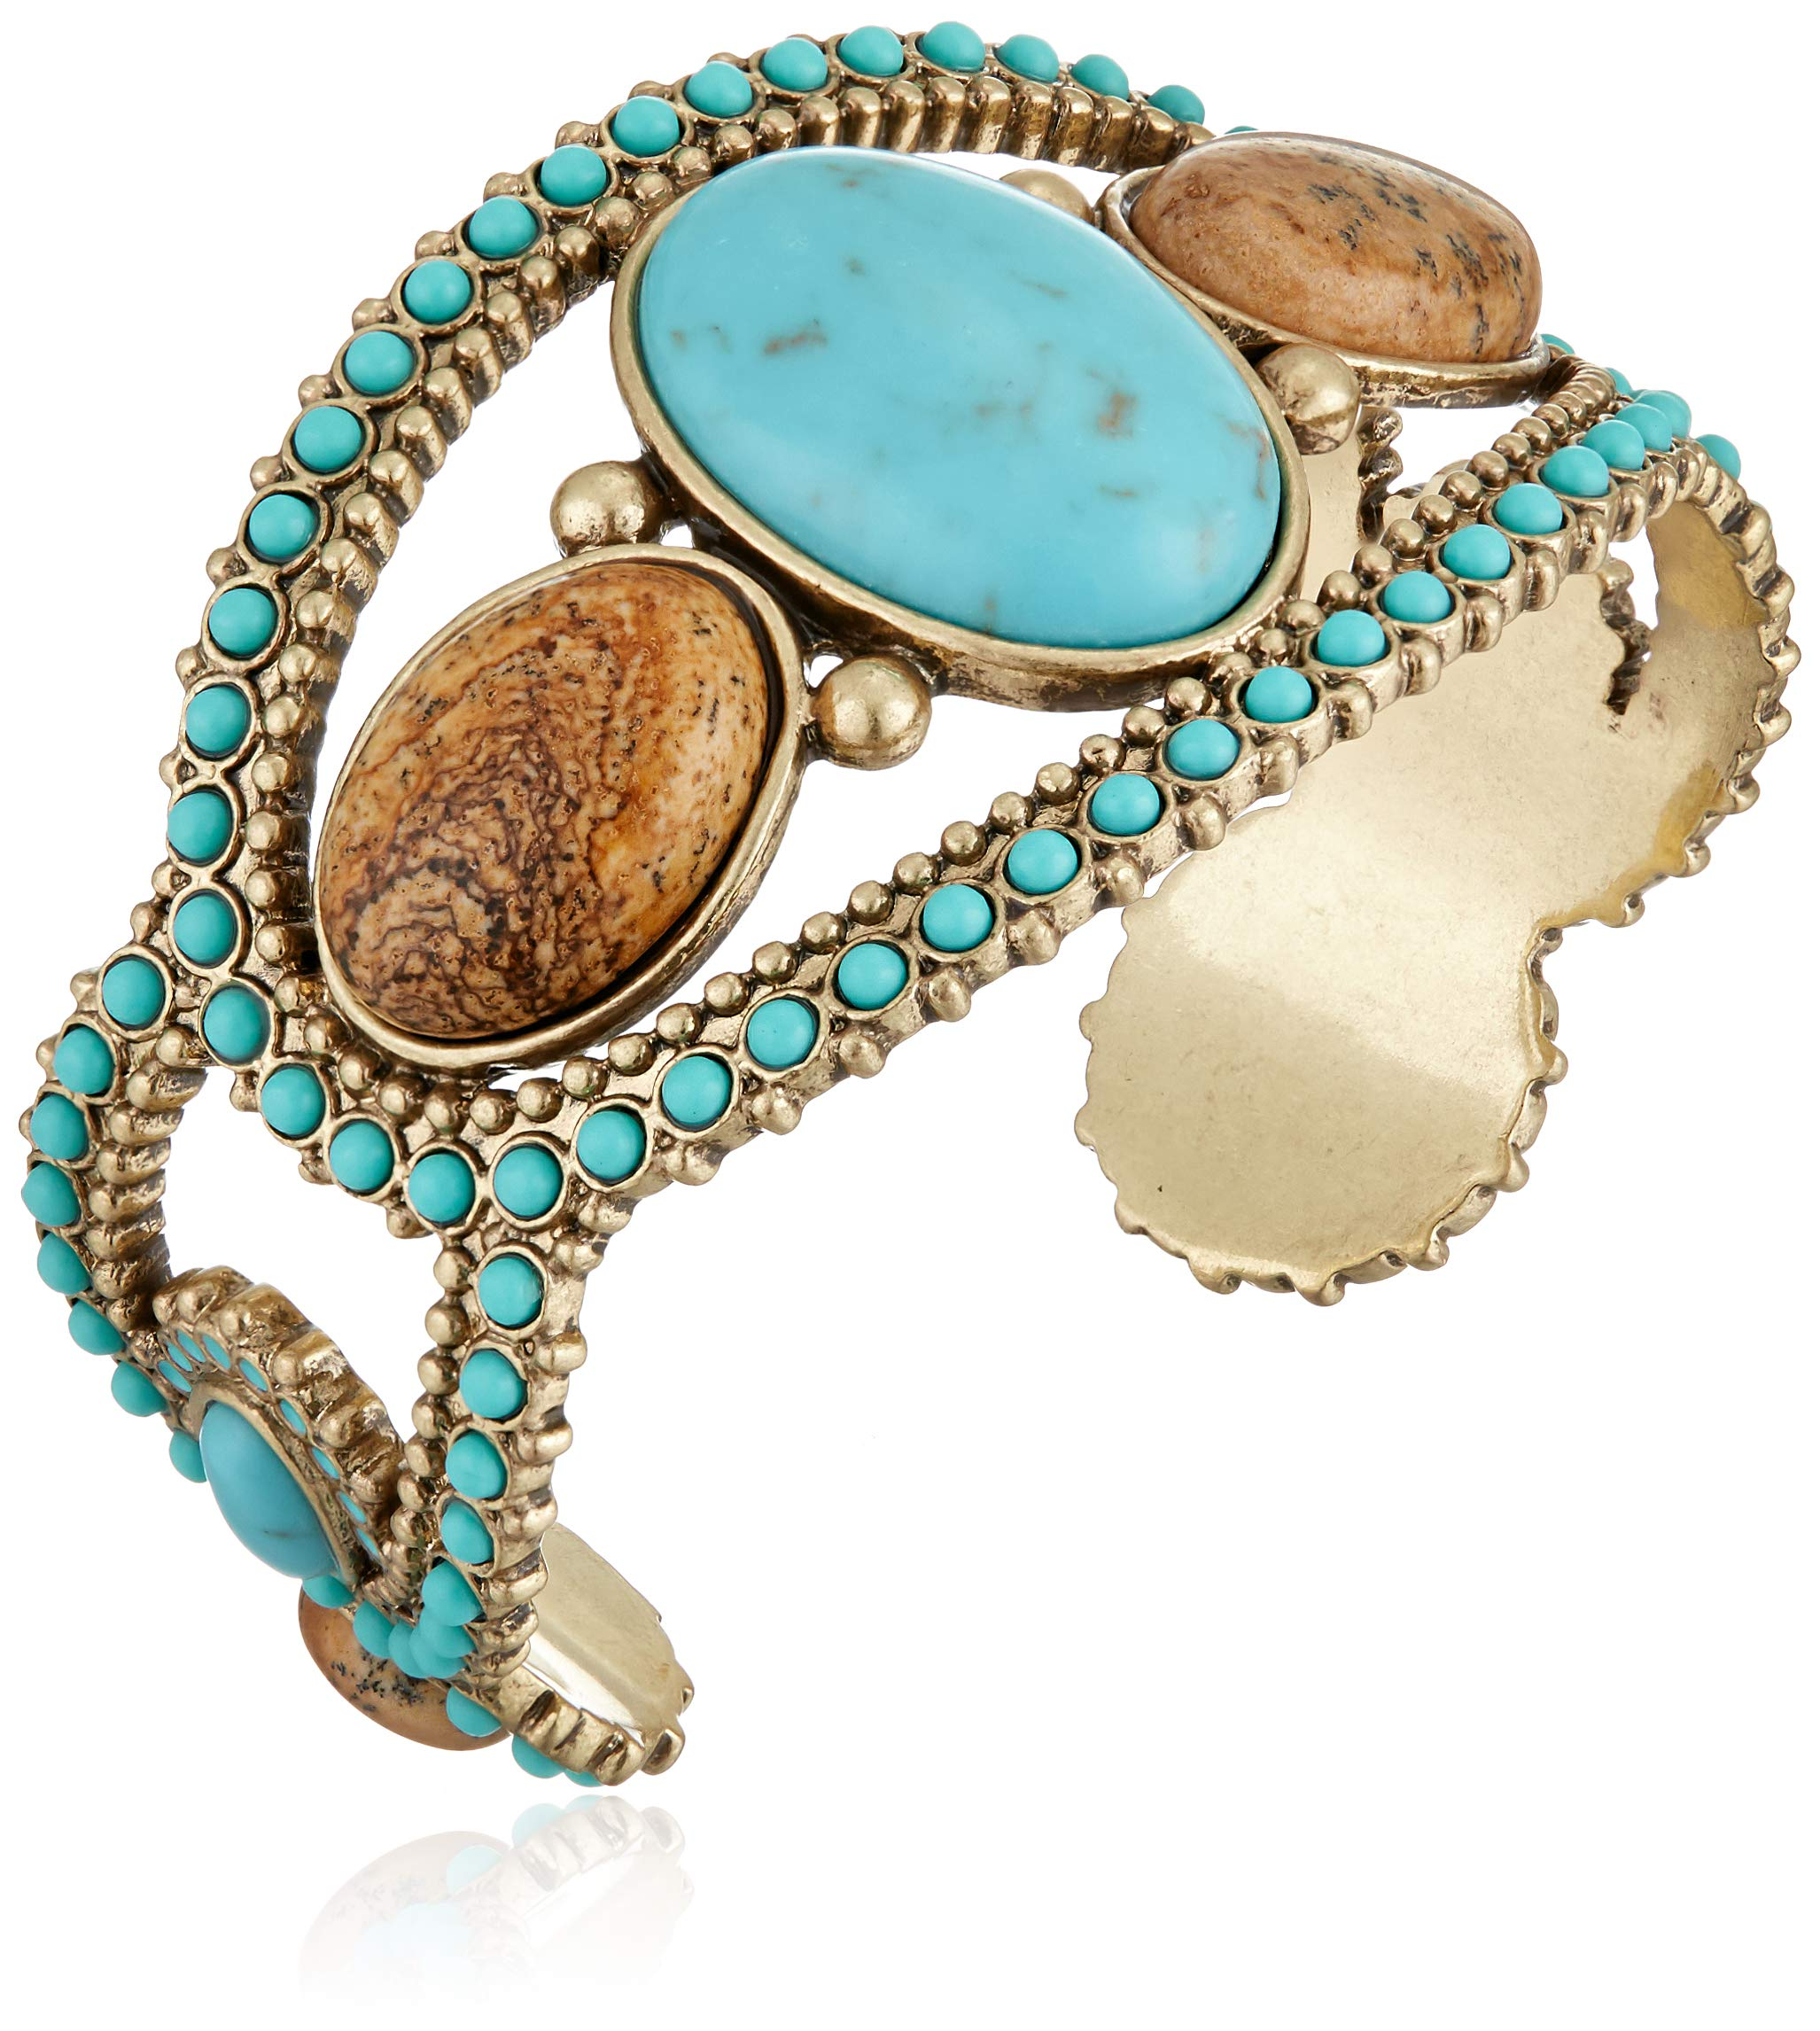 Lucky Brand Women's Turquoise and Jasper Beaded Cuff Bracelet, Gold, One Size